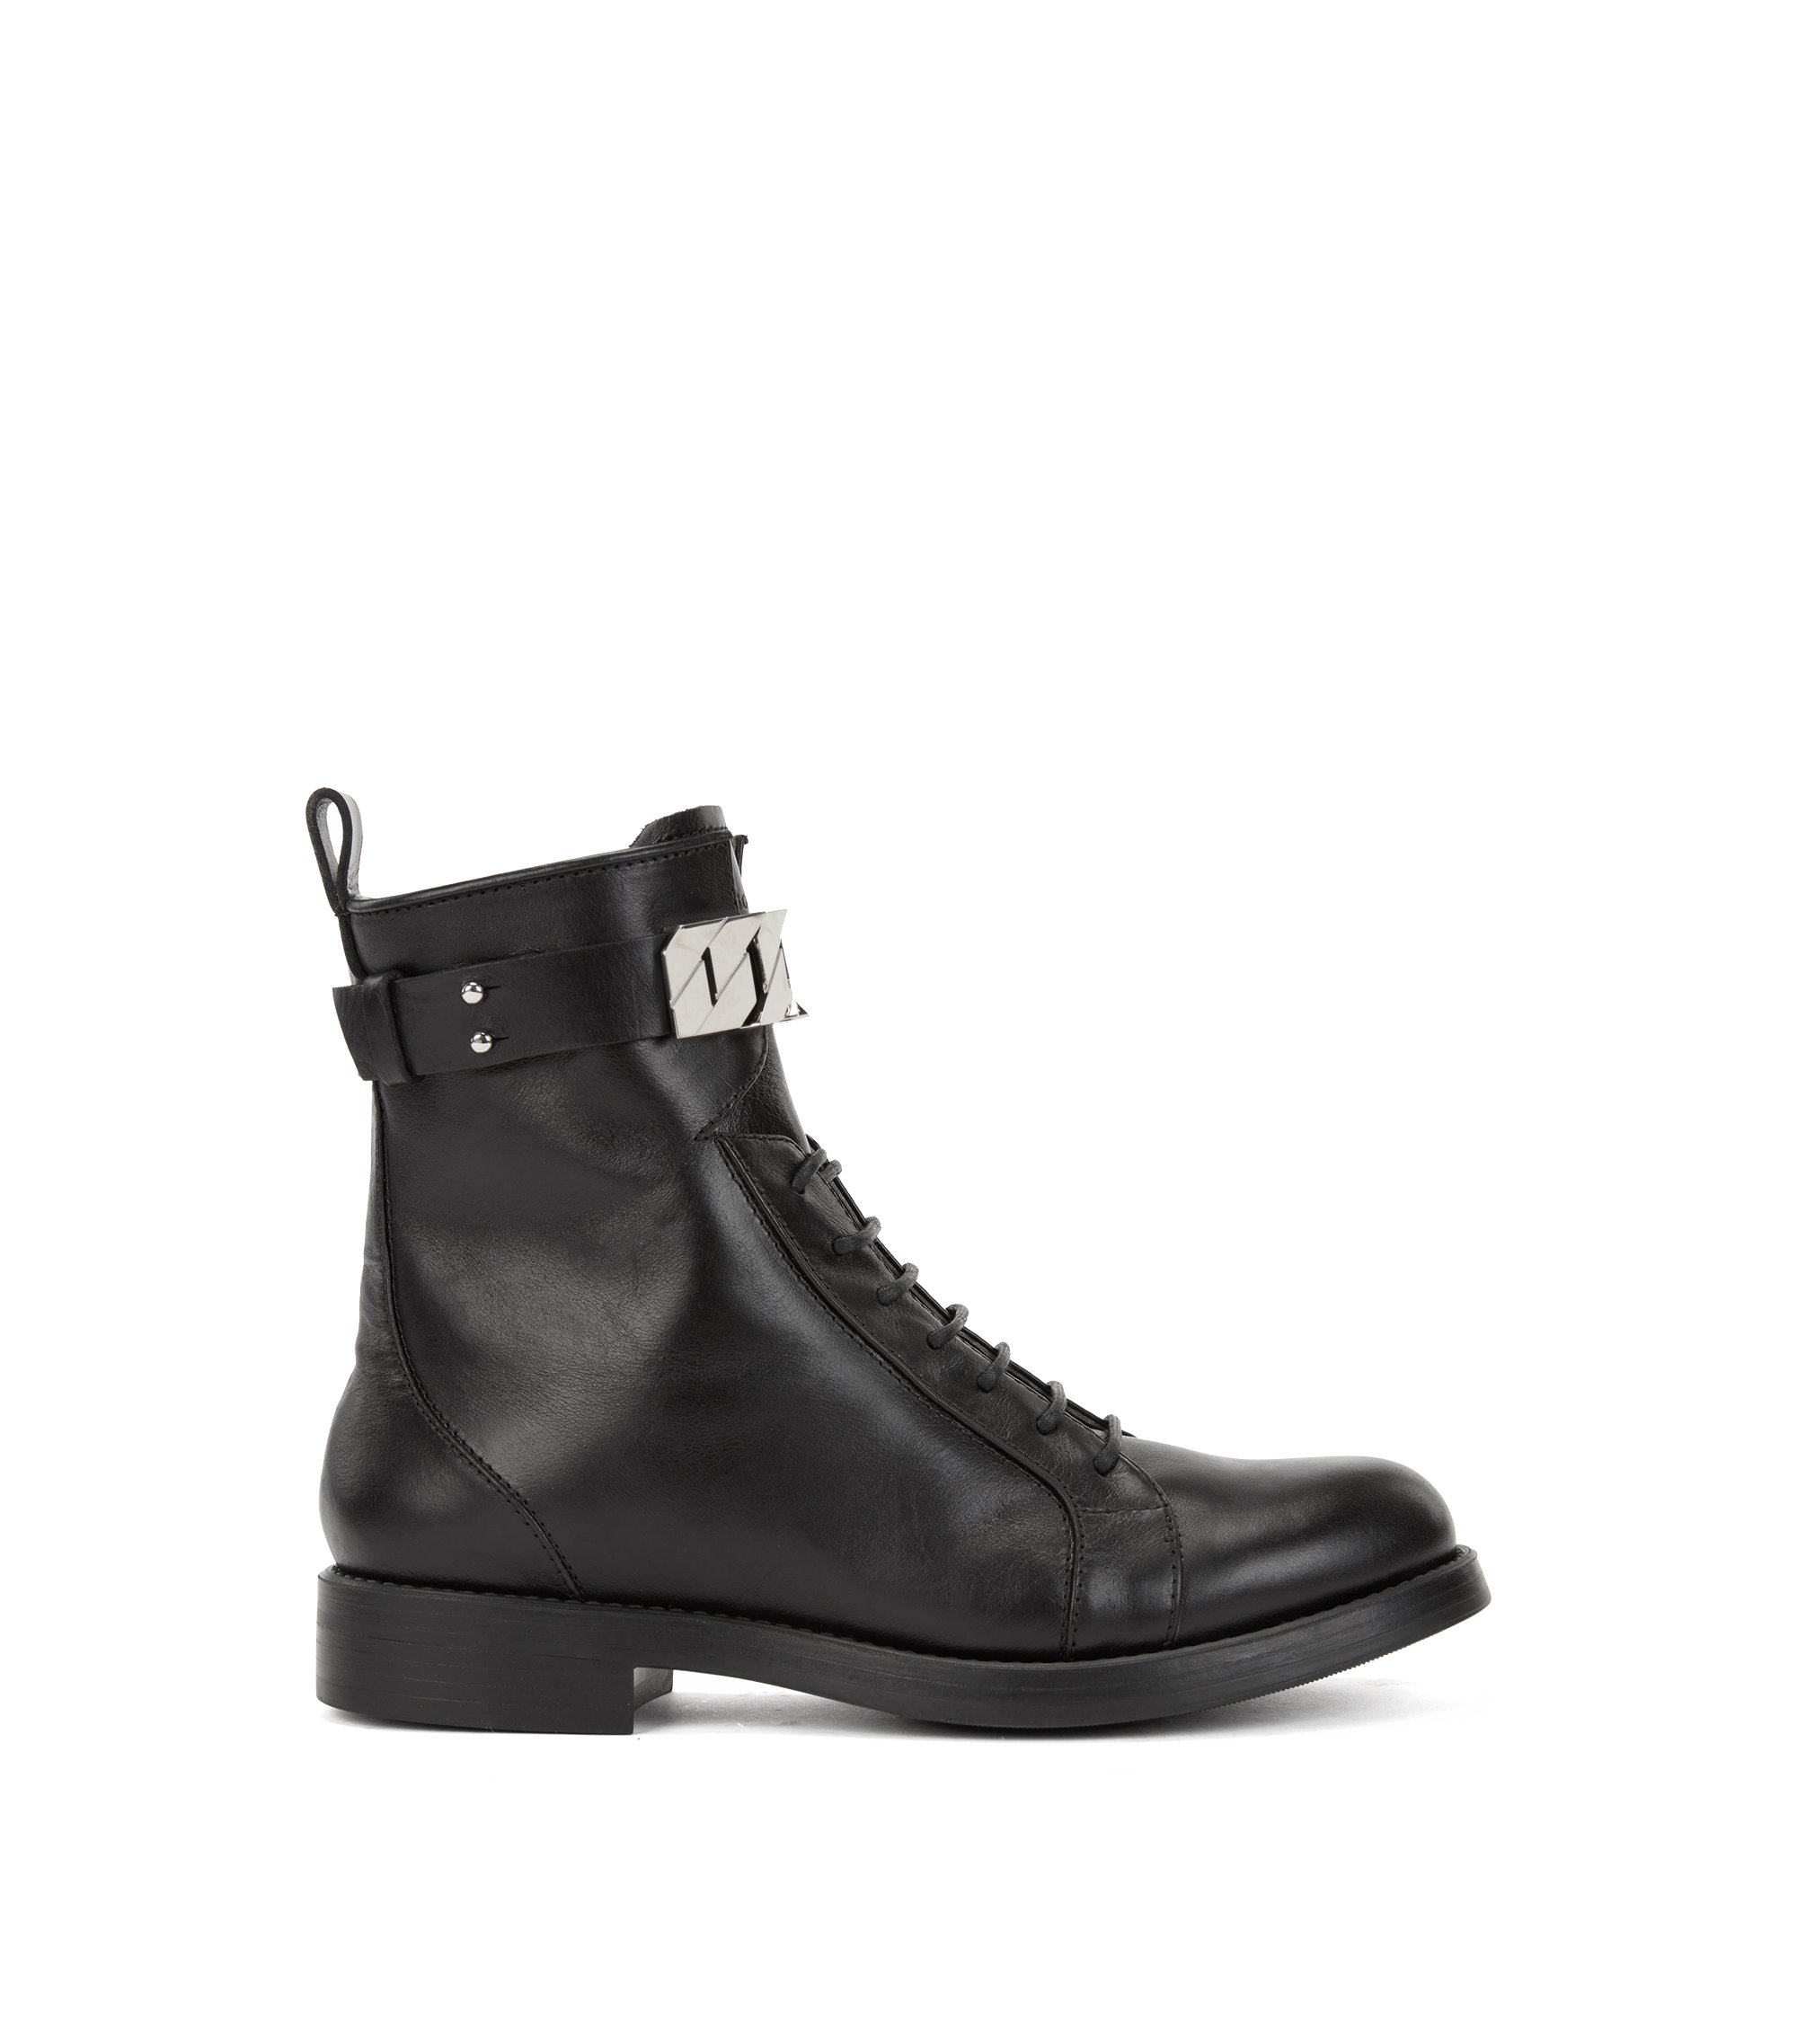 Lace-up ankle boots in leather with chain trim, Black